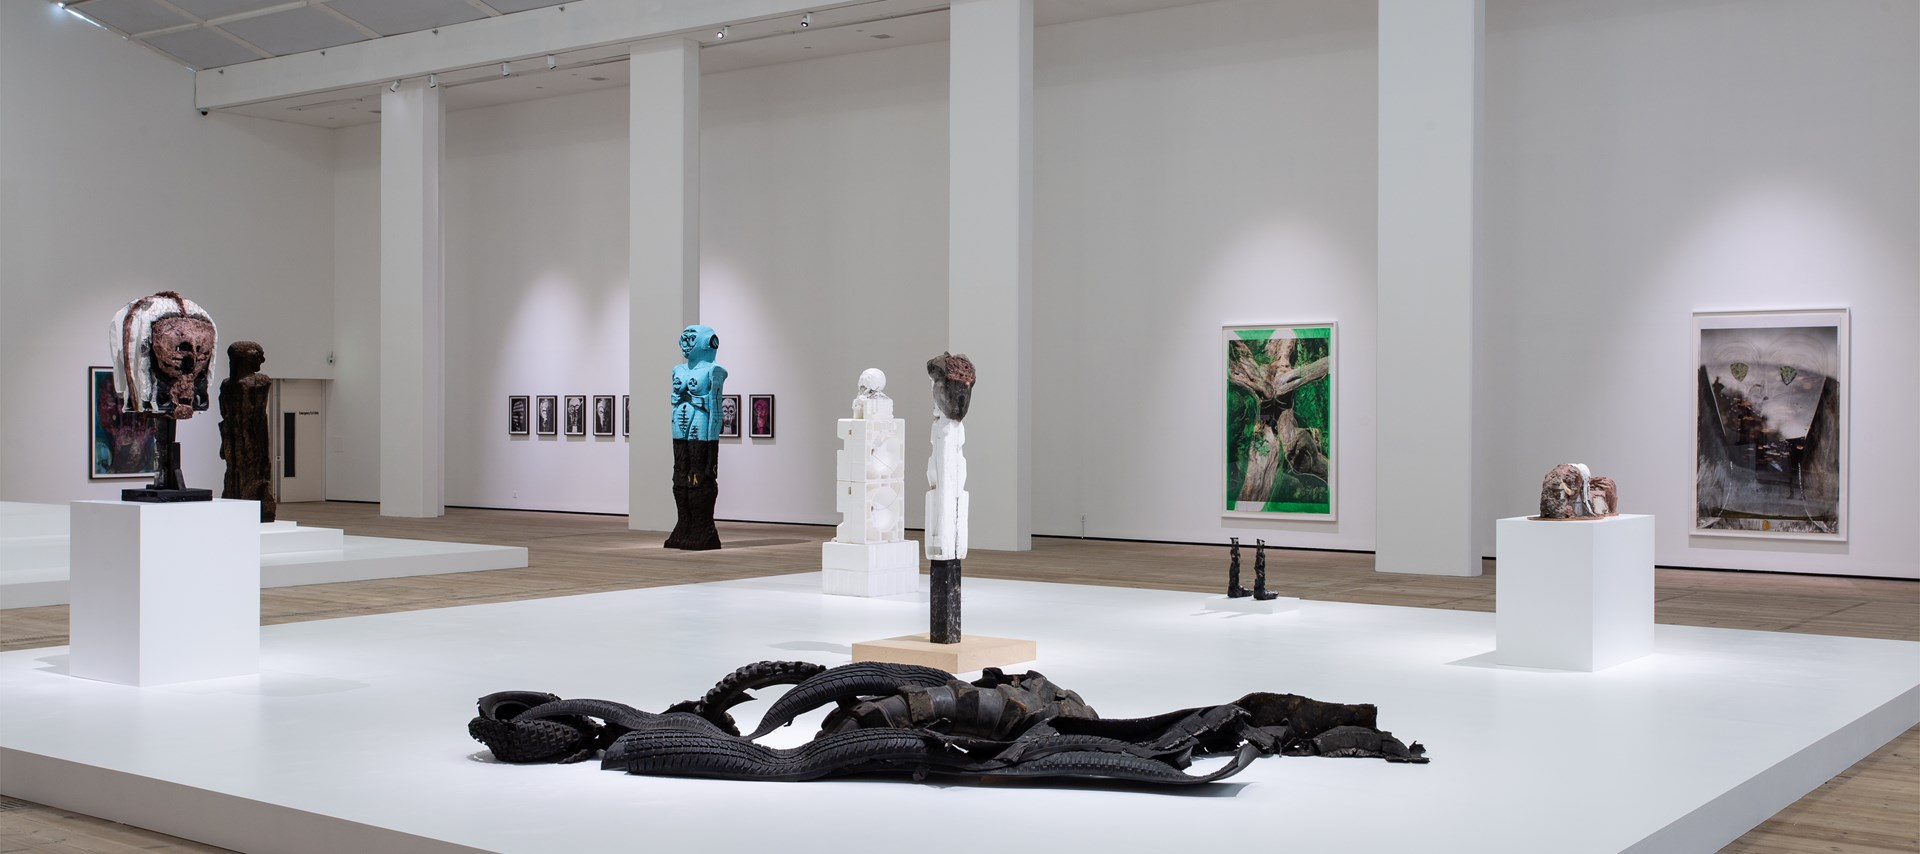 Huma Bhabha: Against Time: Installation view by Rob Harris © BALTIC 2020